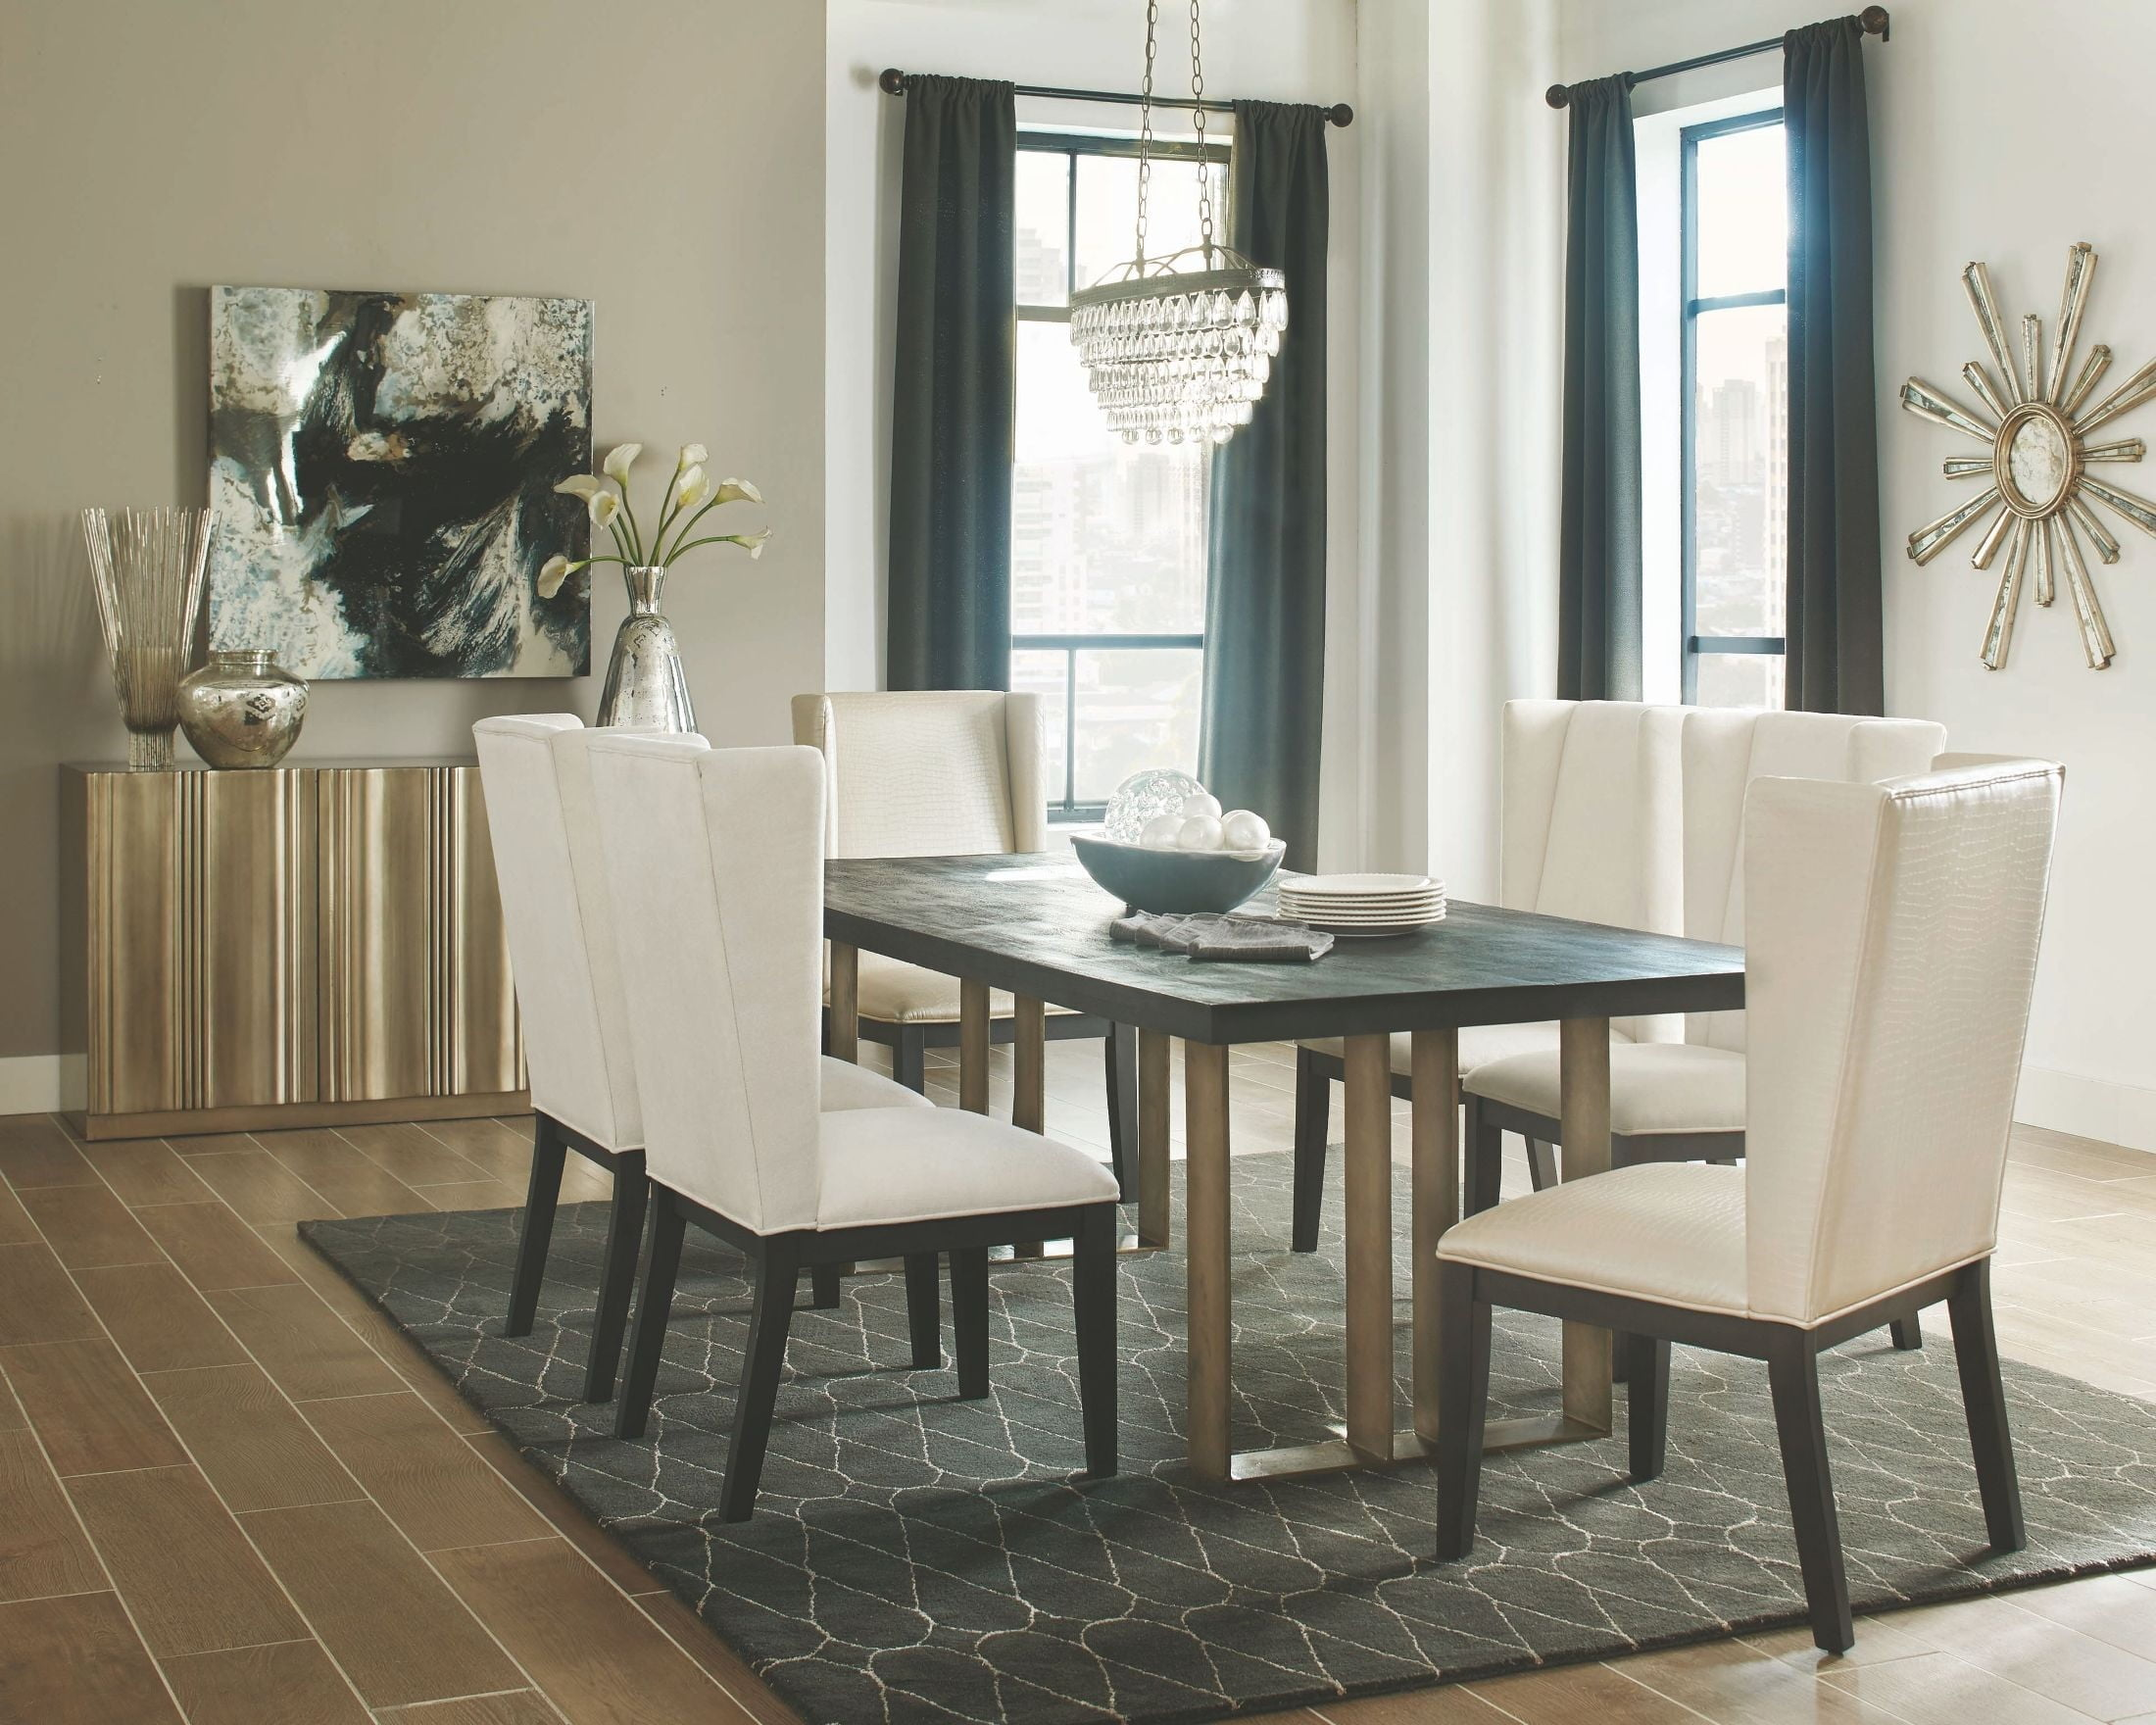 Friedman Worn Black Dining Room Set